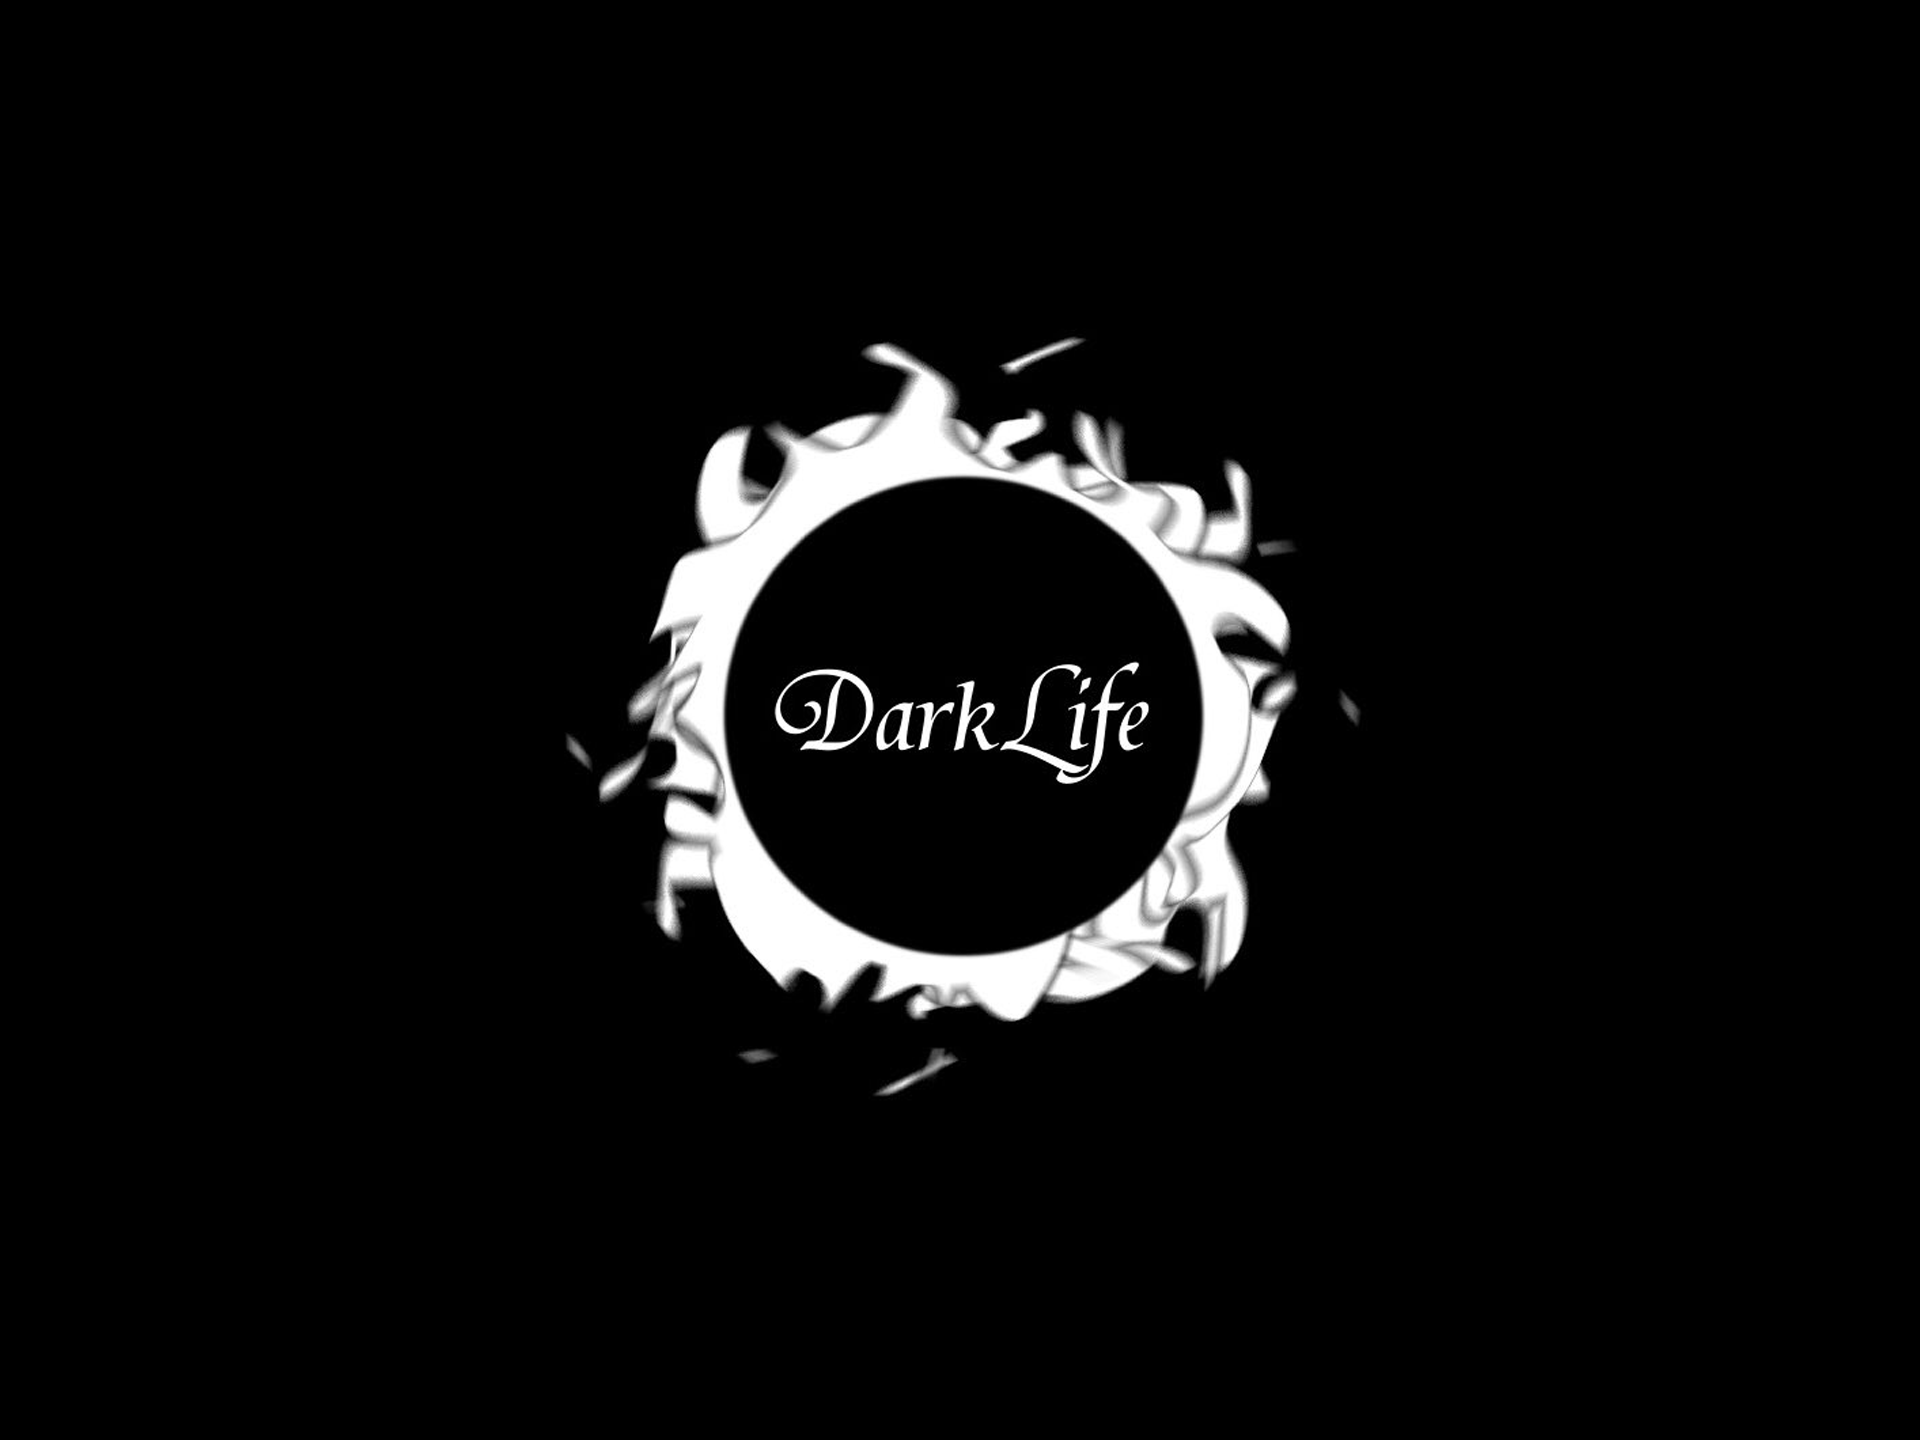 DarkLife